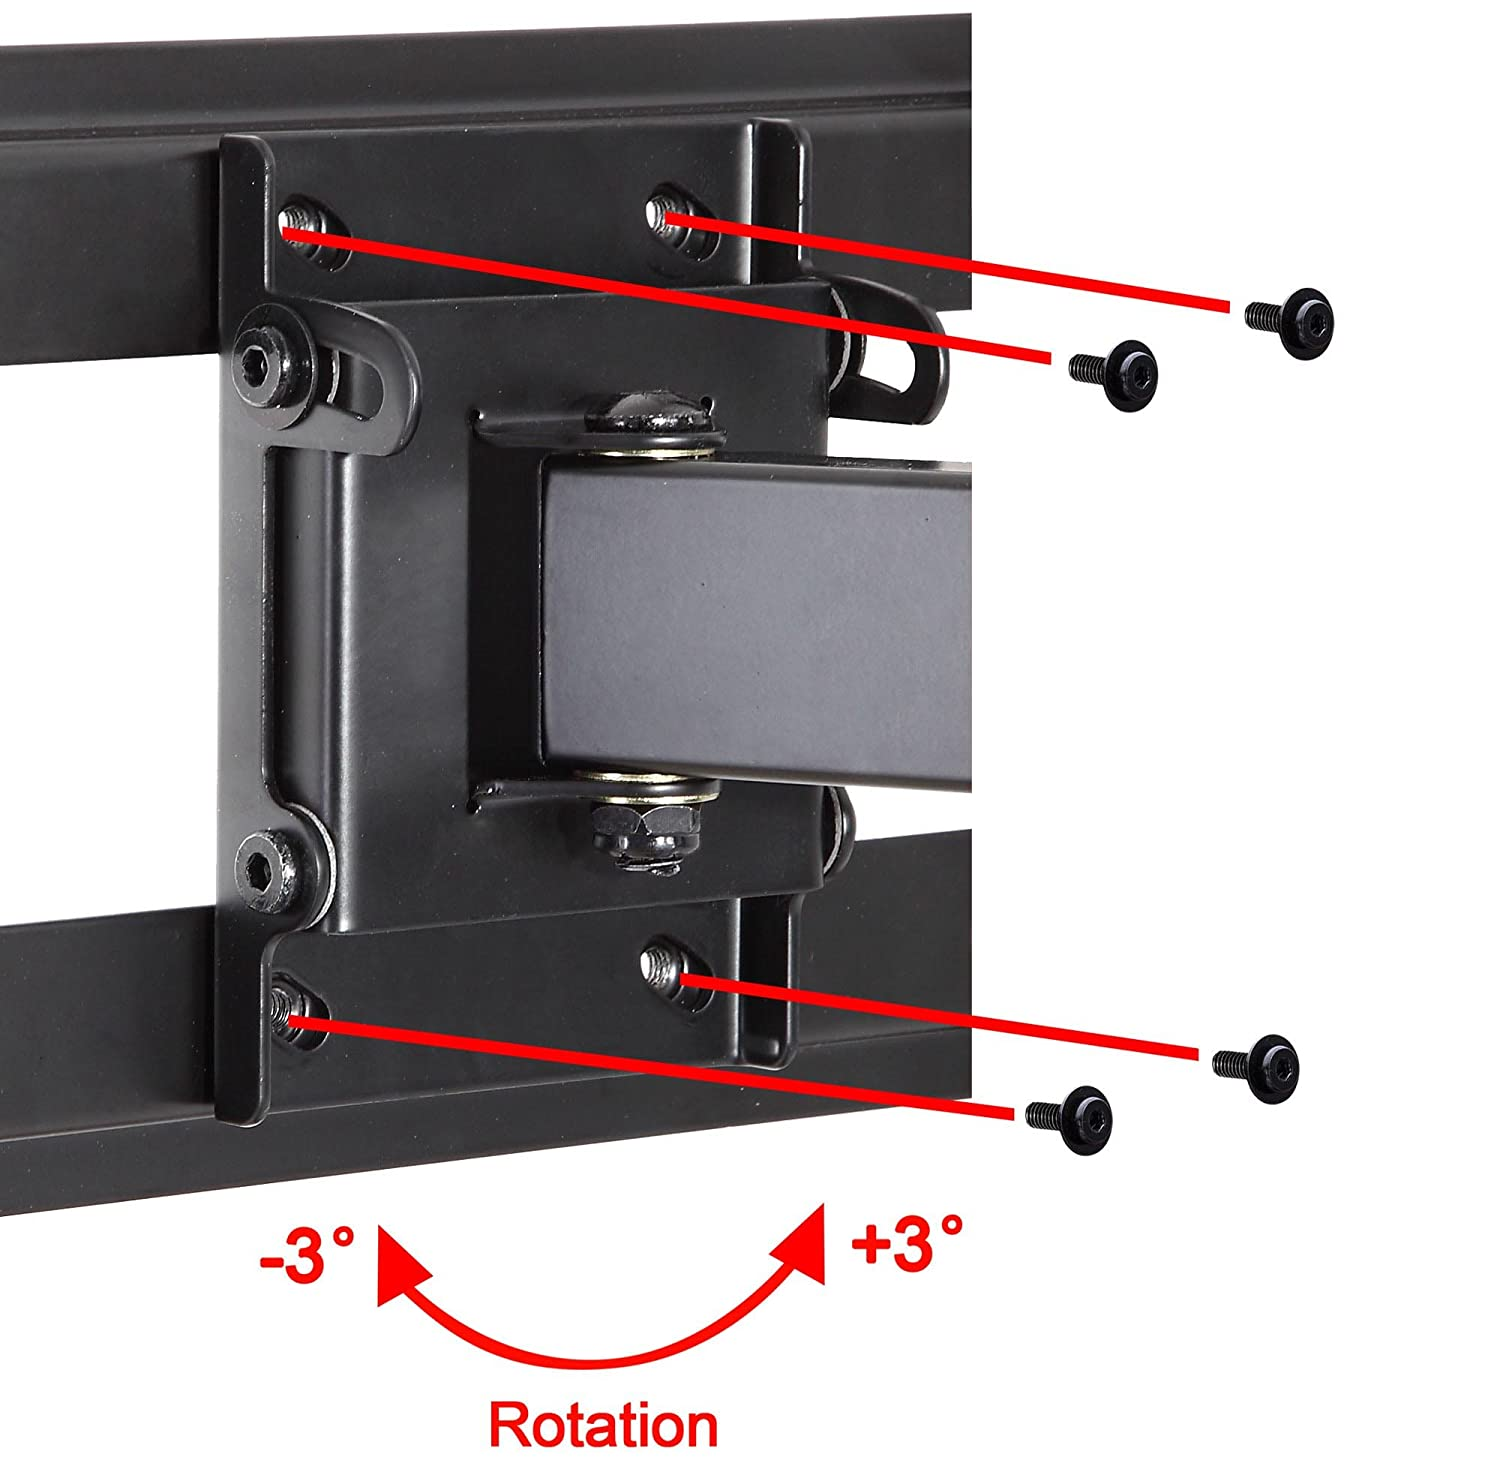 """Mounting Dream MD2380 TV Wall Mount Bracket with Full Motion Articulating Arm (16"""" Extension) for most of 26-55 Inches LED, LCD and Plasma TVs up to VESA 400x400mm and 99 lbs, with Tilt, Swivel, and Rotation Adjustment, Including 6 ft HDMI Cable and Magnetic Bubble Level (For Samsung, Sony, Tos"""